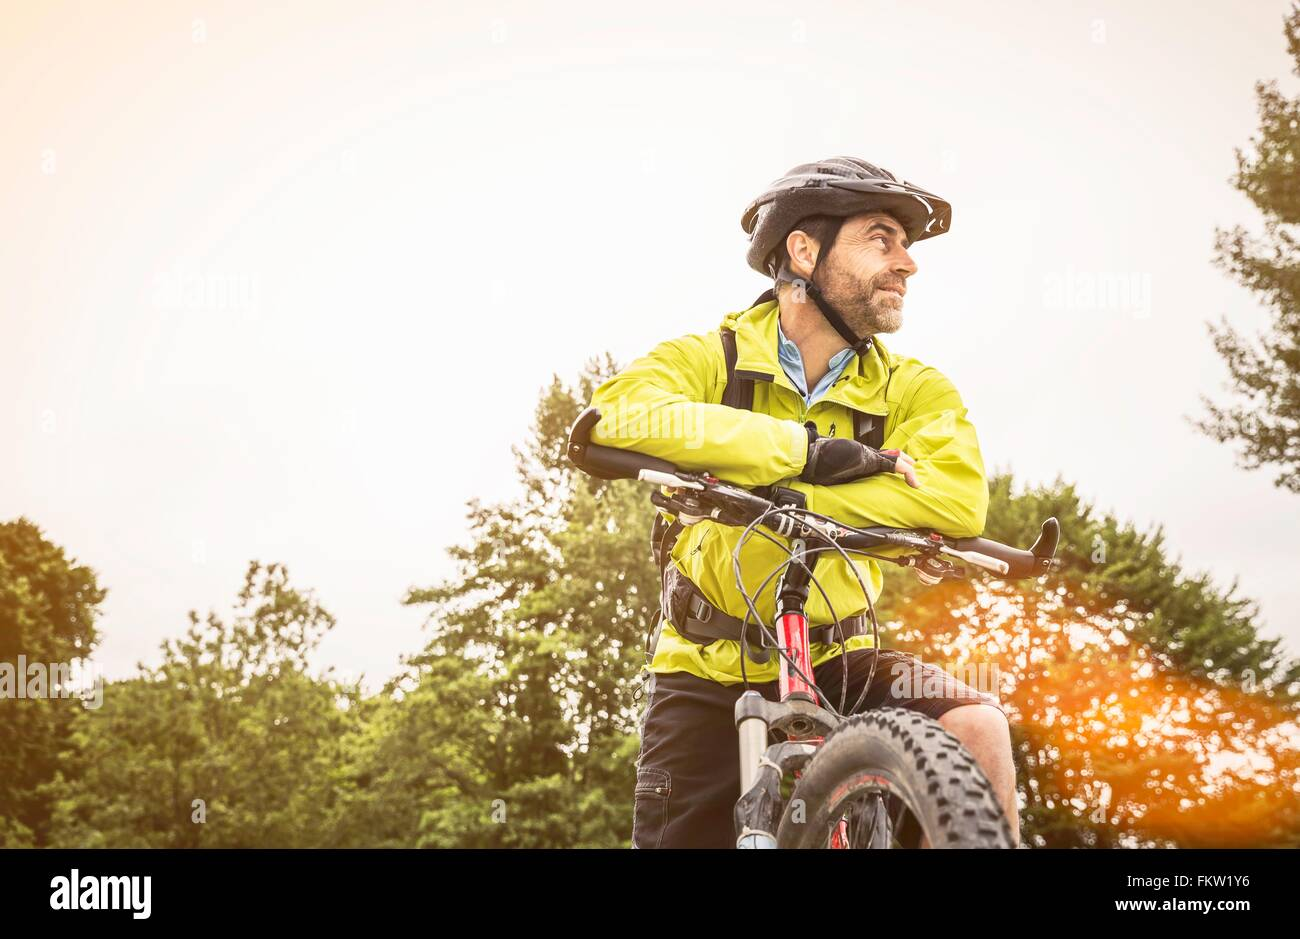 Low angle view of mature male mountain biker taking a break - Stock Image